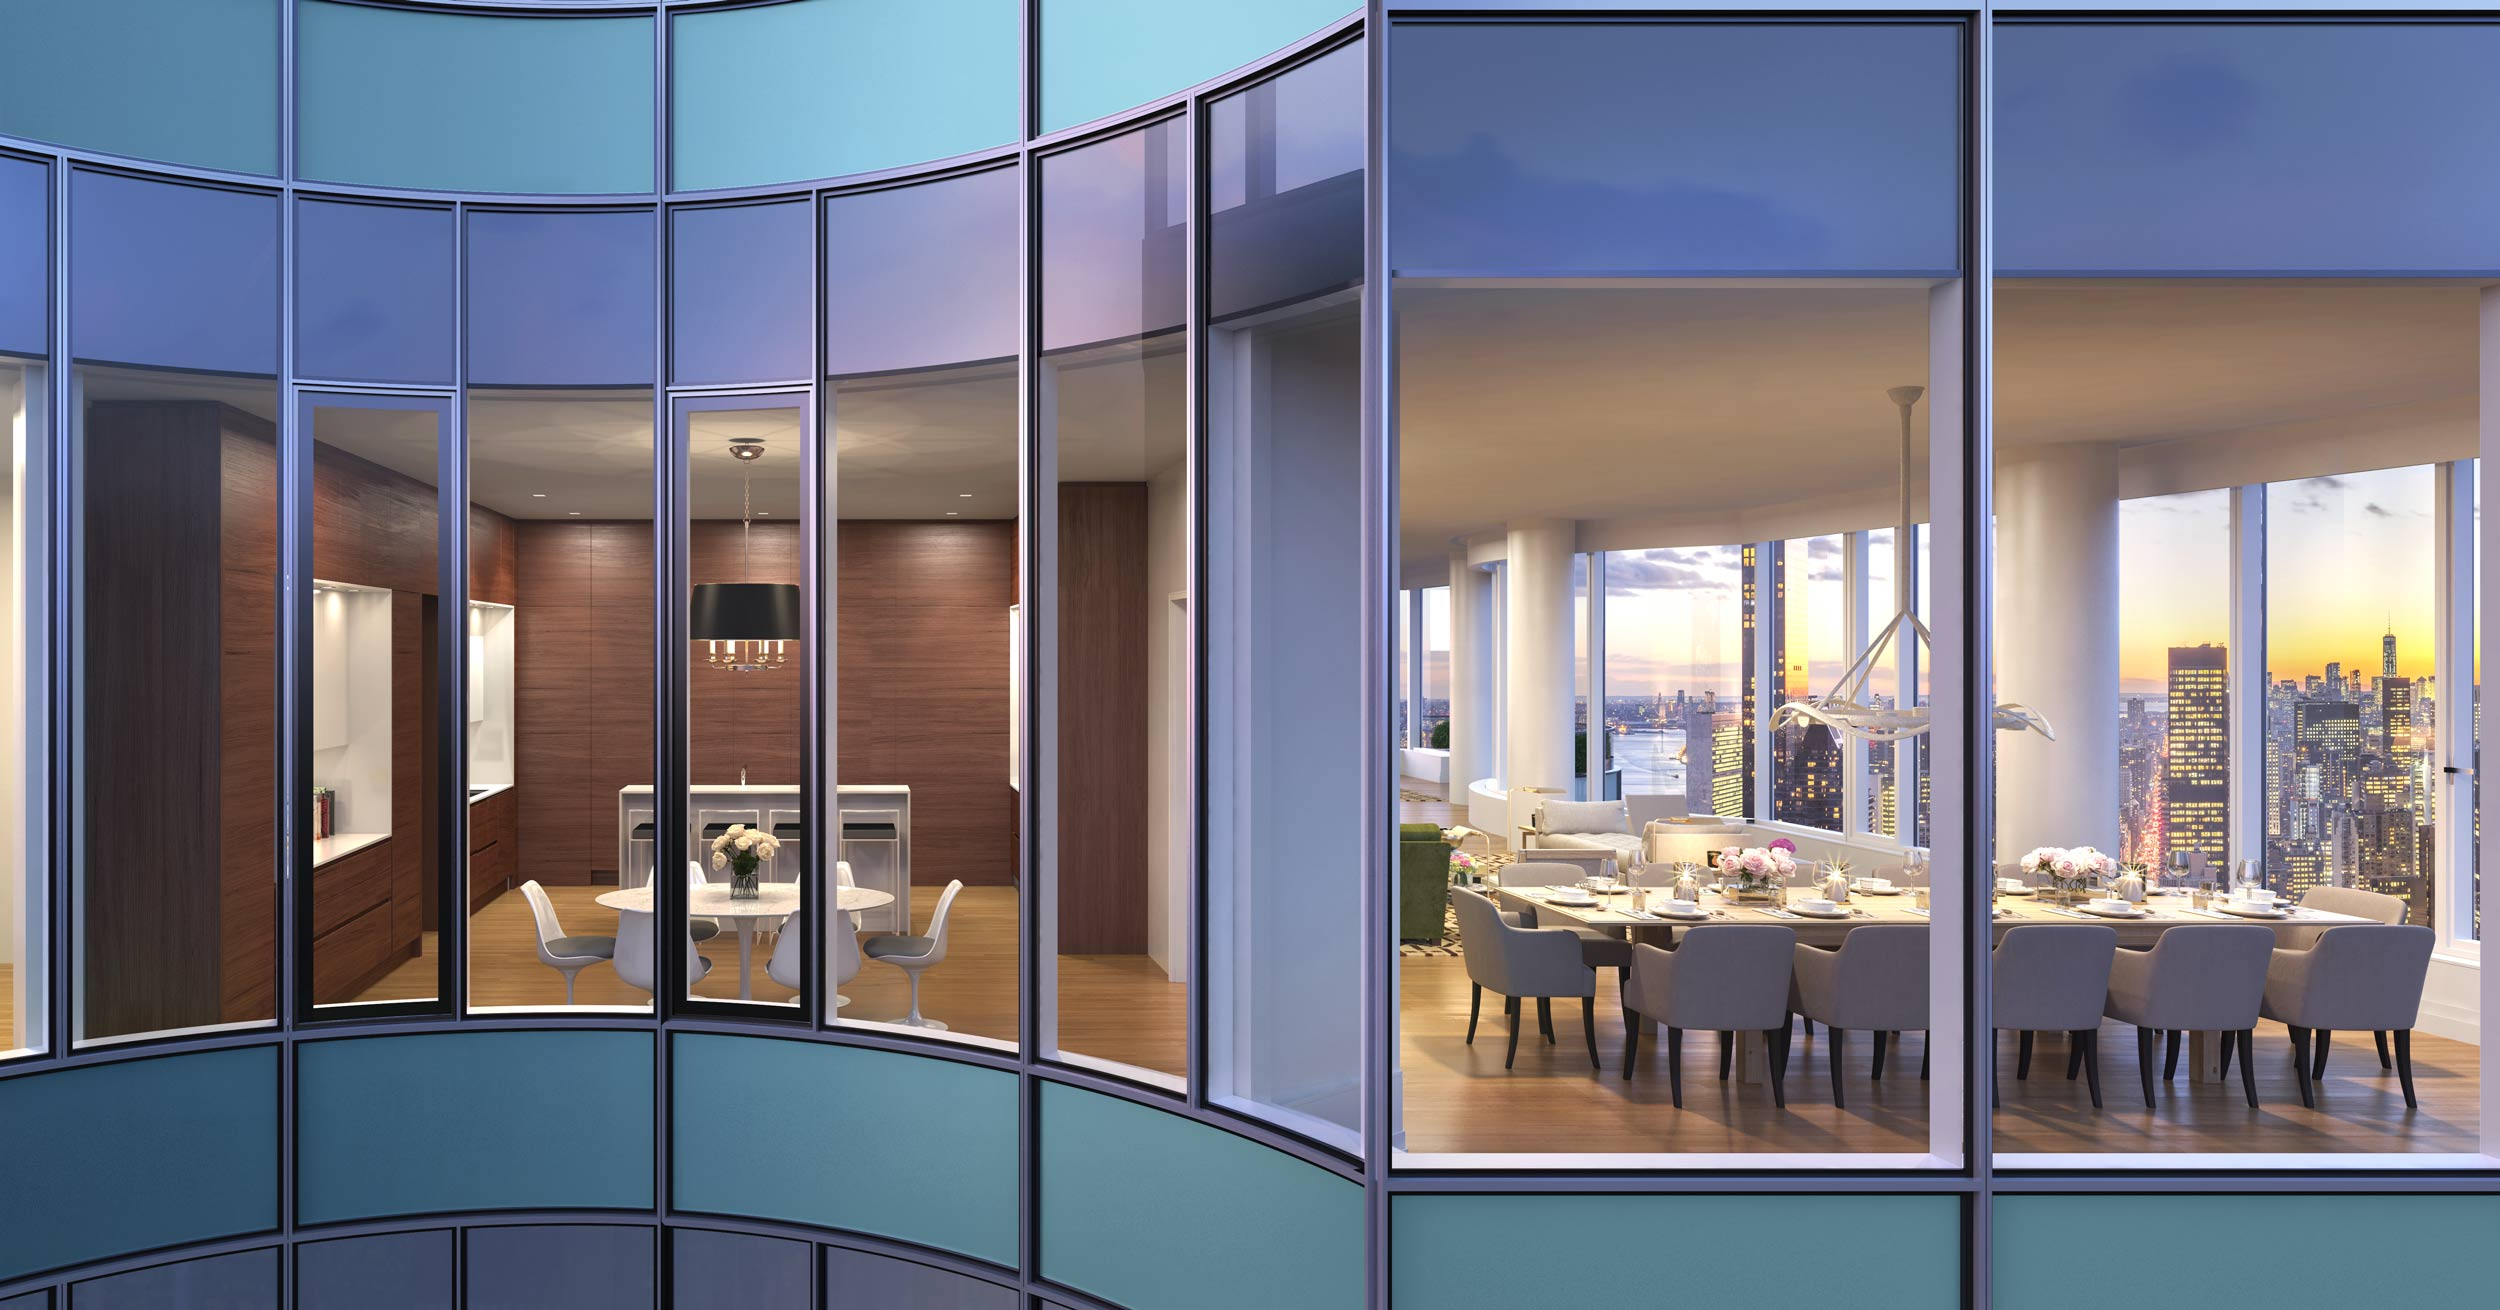 New look at 65 story residential tower nearing completion for 57th street salon